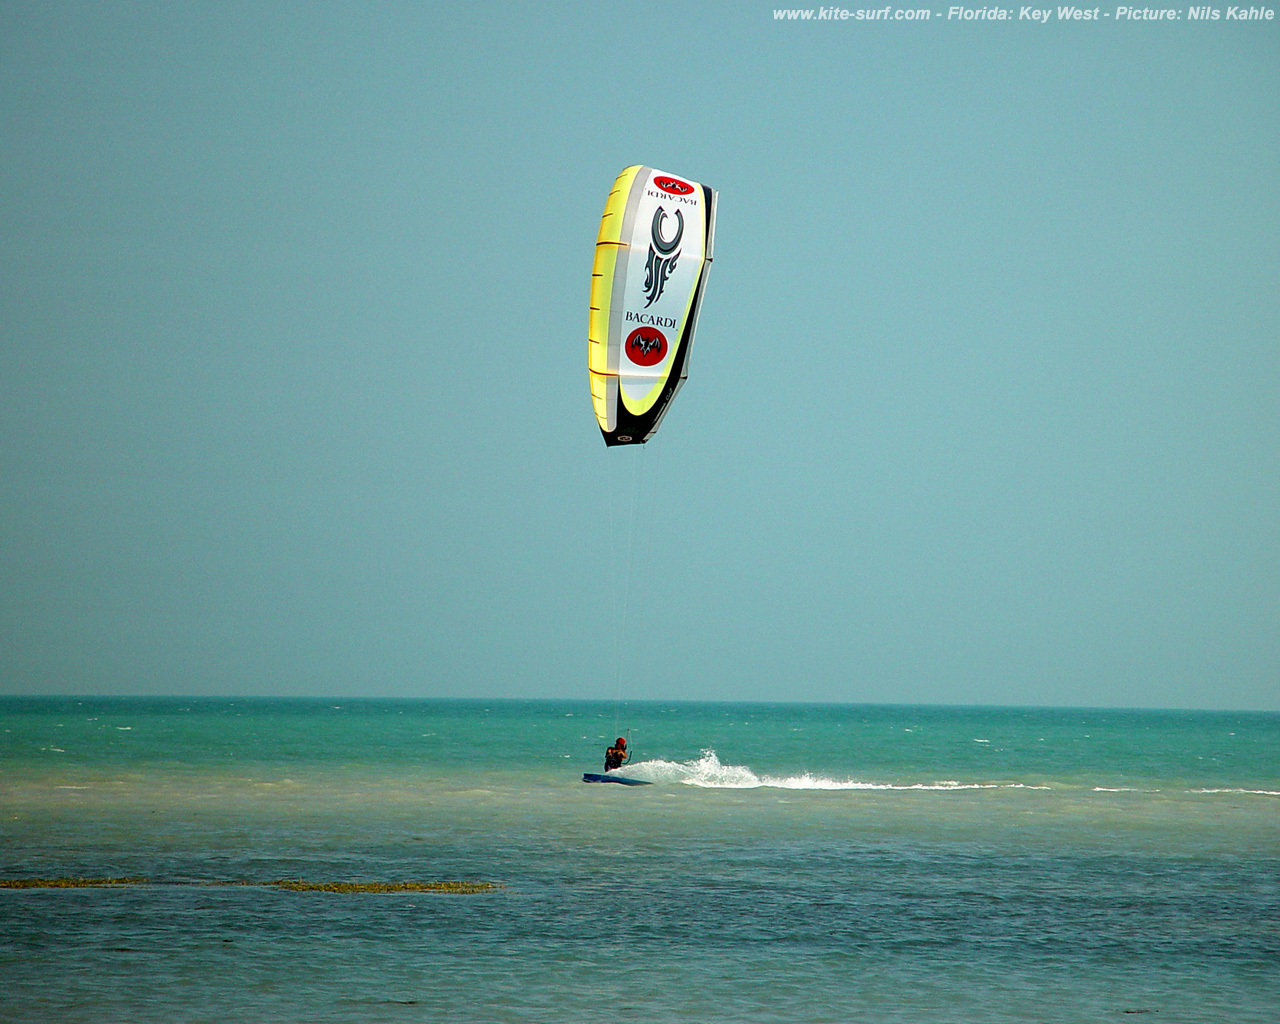 Kite Surfing Wallpaper PicsWallpapercom 1280x1024